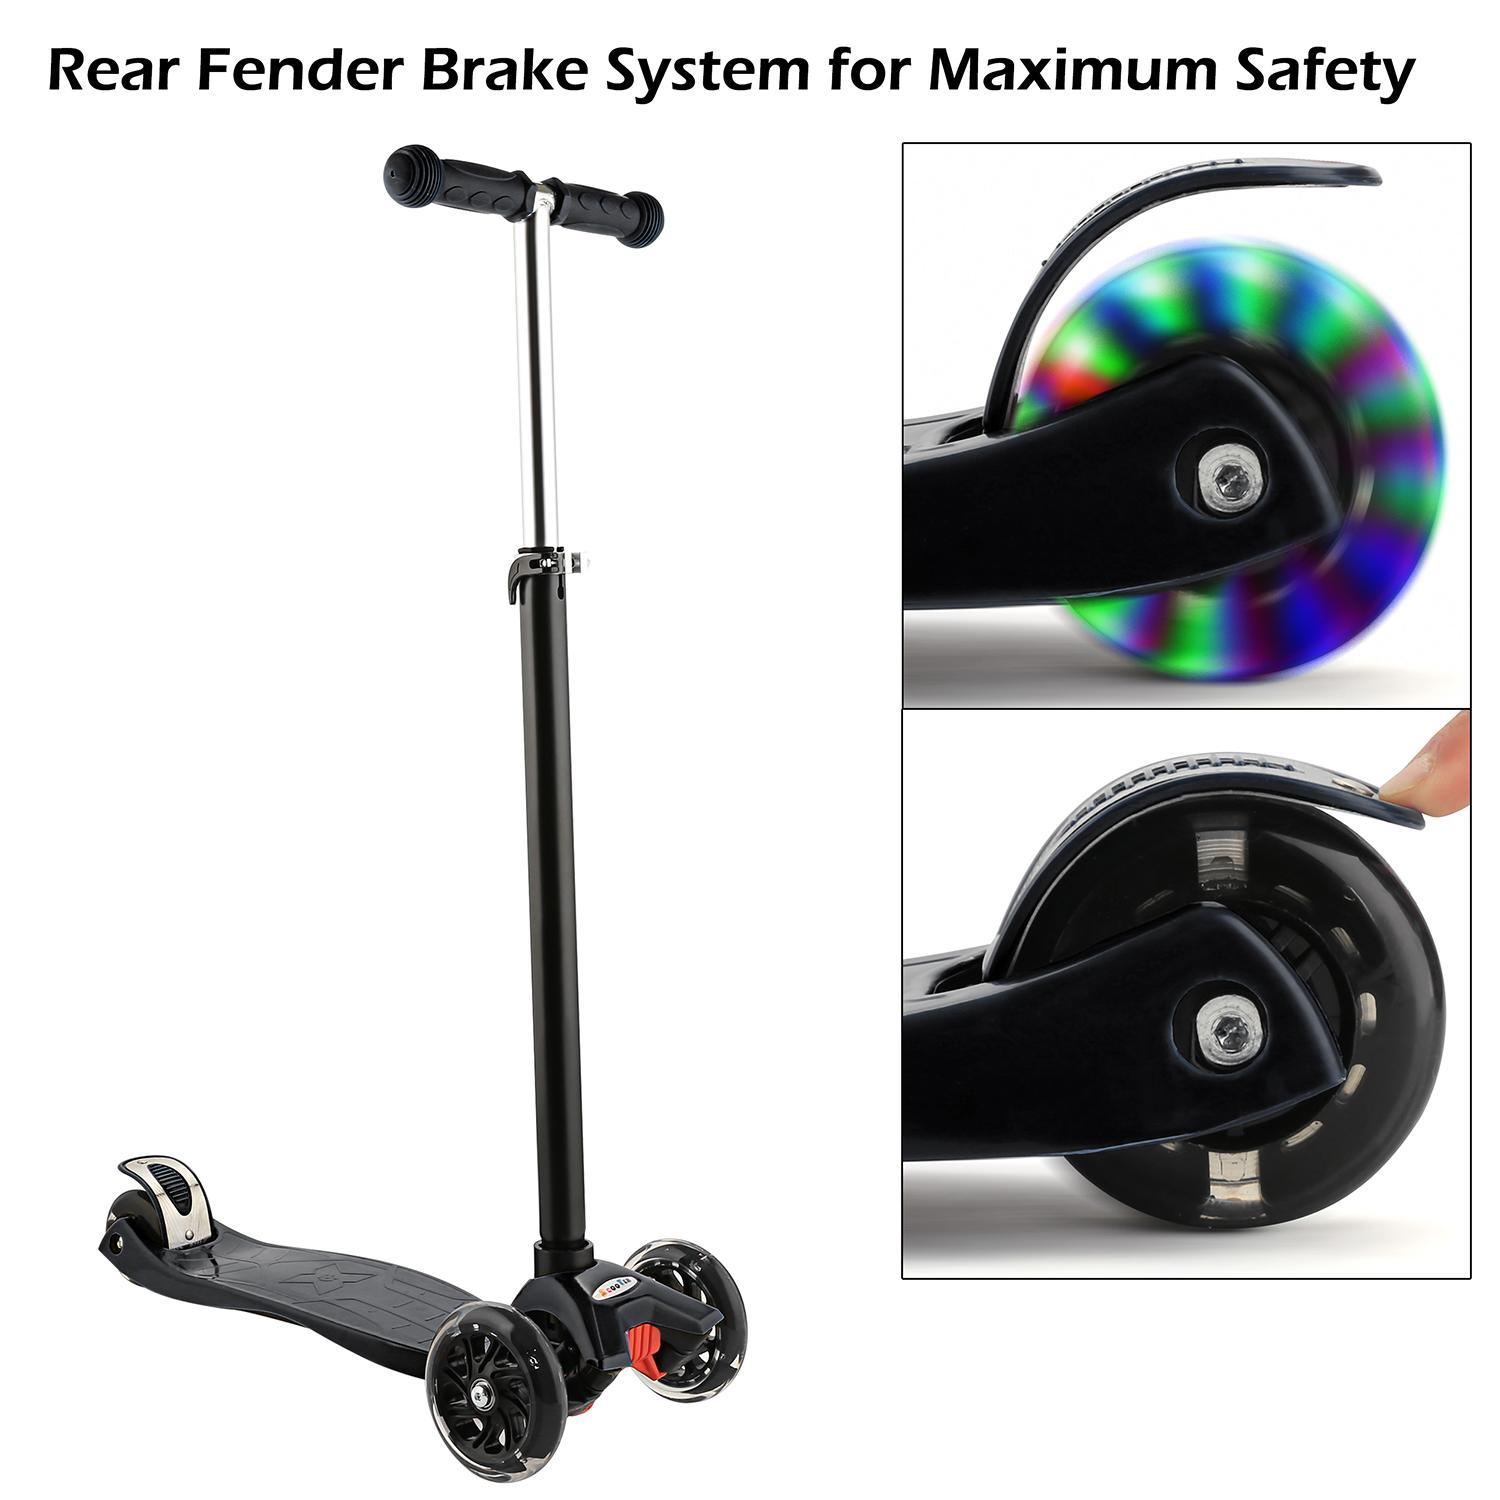 3 Wheel Kick Scooter for Kids Boys Girls Adjustable Height Aluminum Alloy by